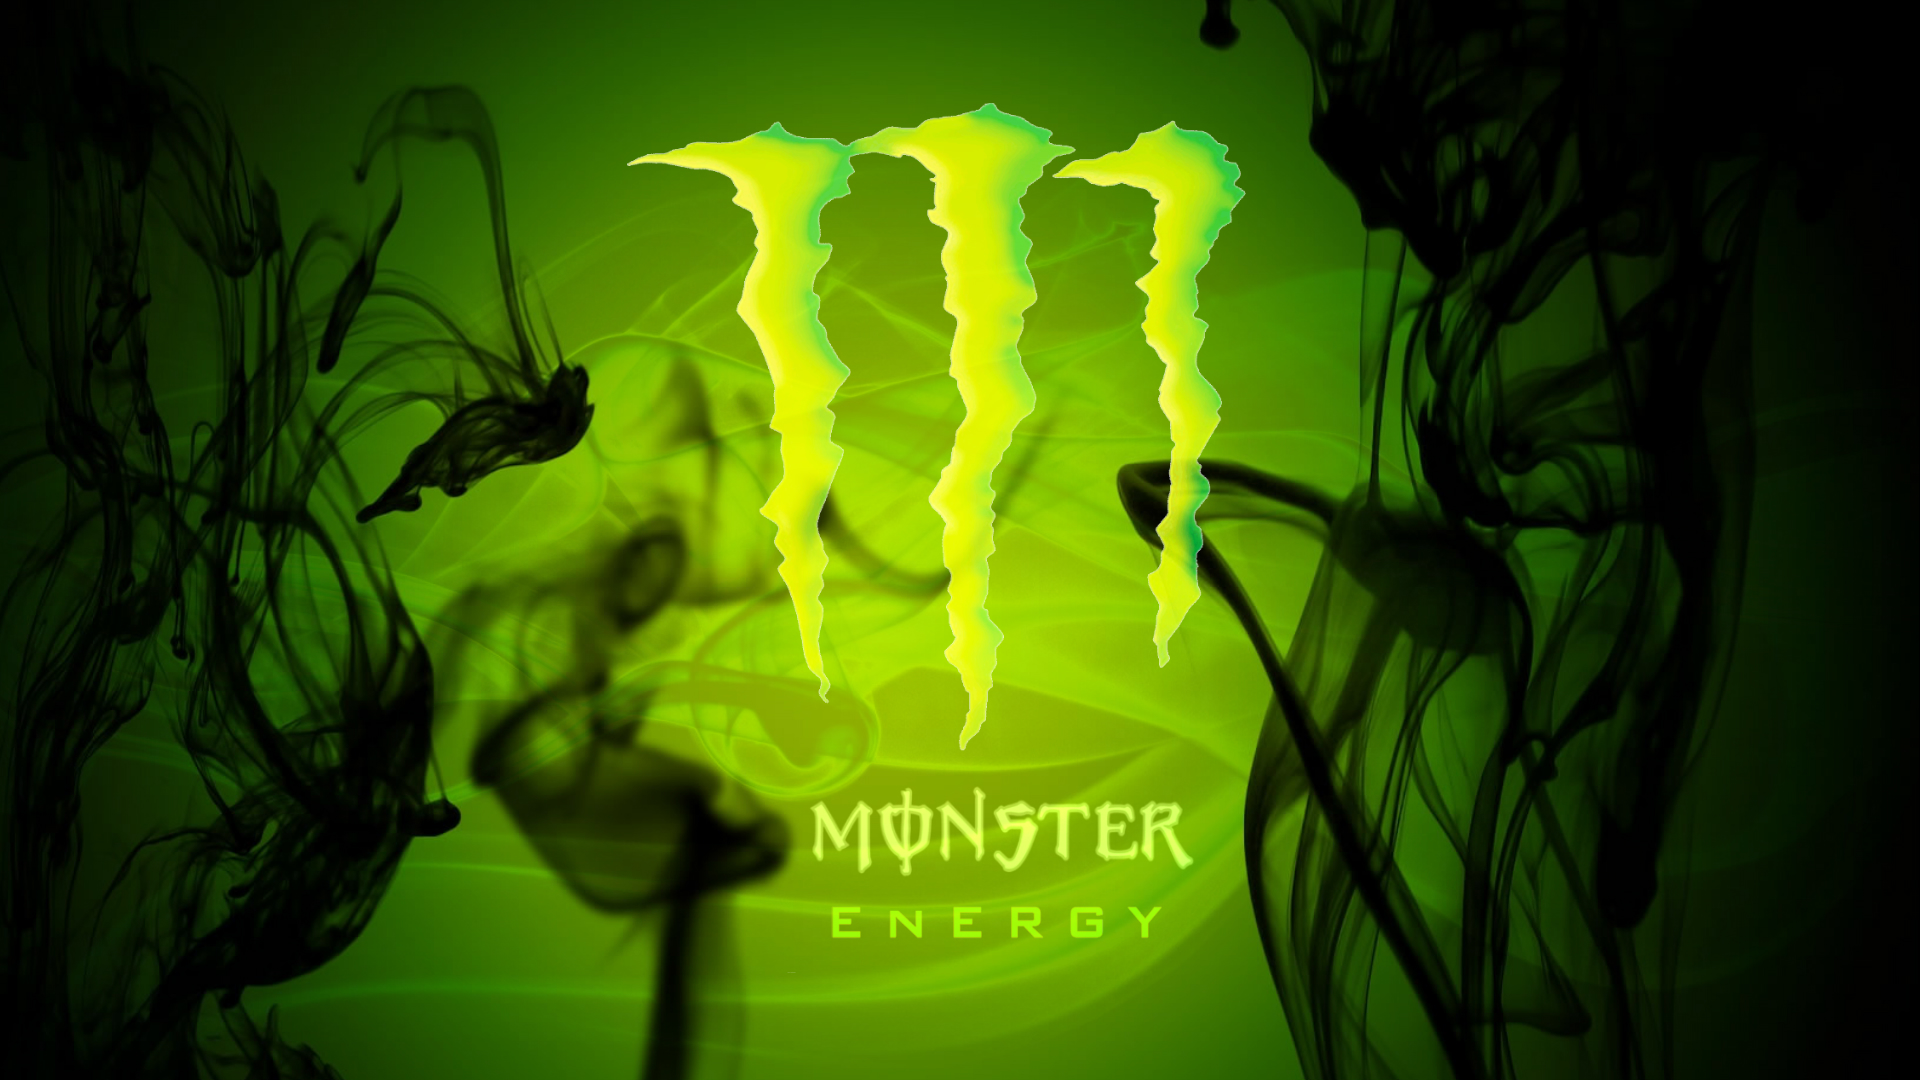 fondos-hd-de-monster-Fondosdepantalla.top (8)